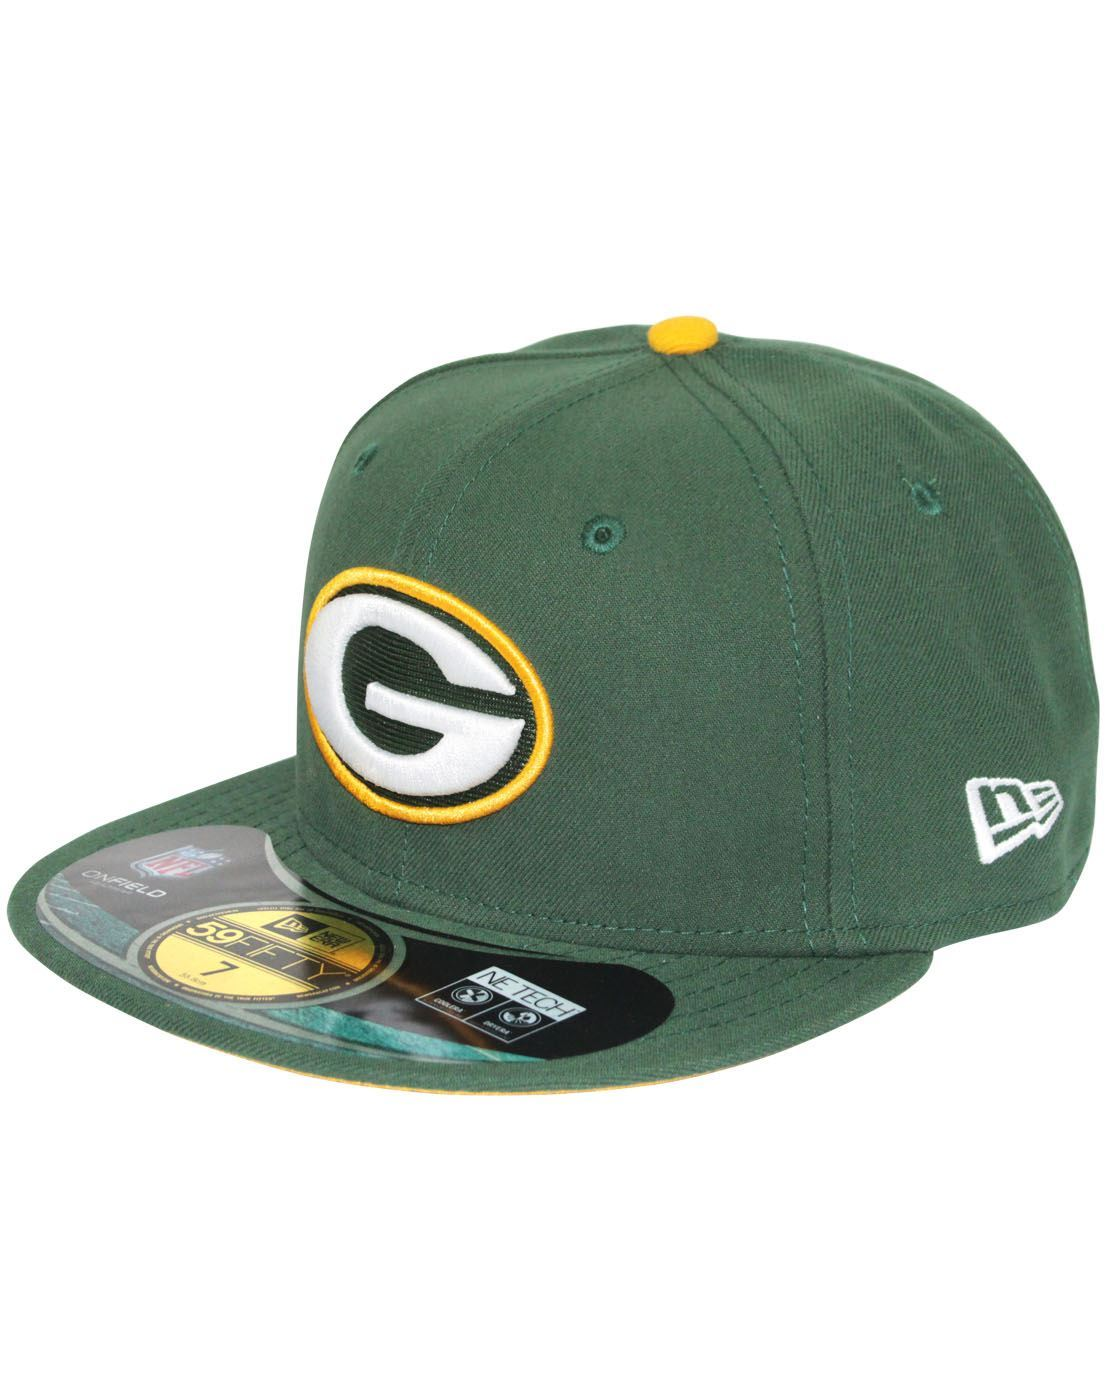 a1c0d0c2 cheap nfl green bay packers hats c3bbb fae6c